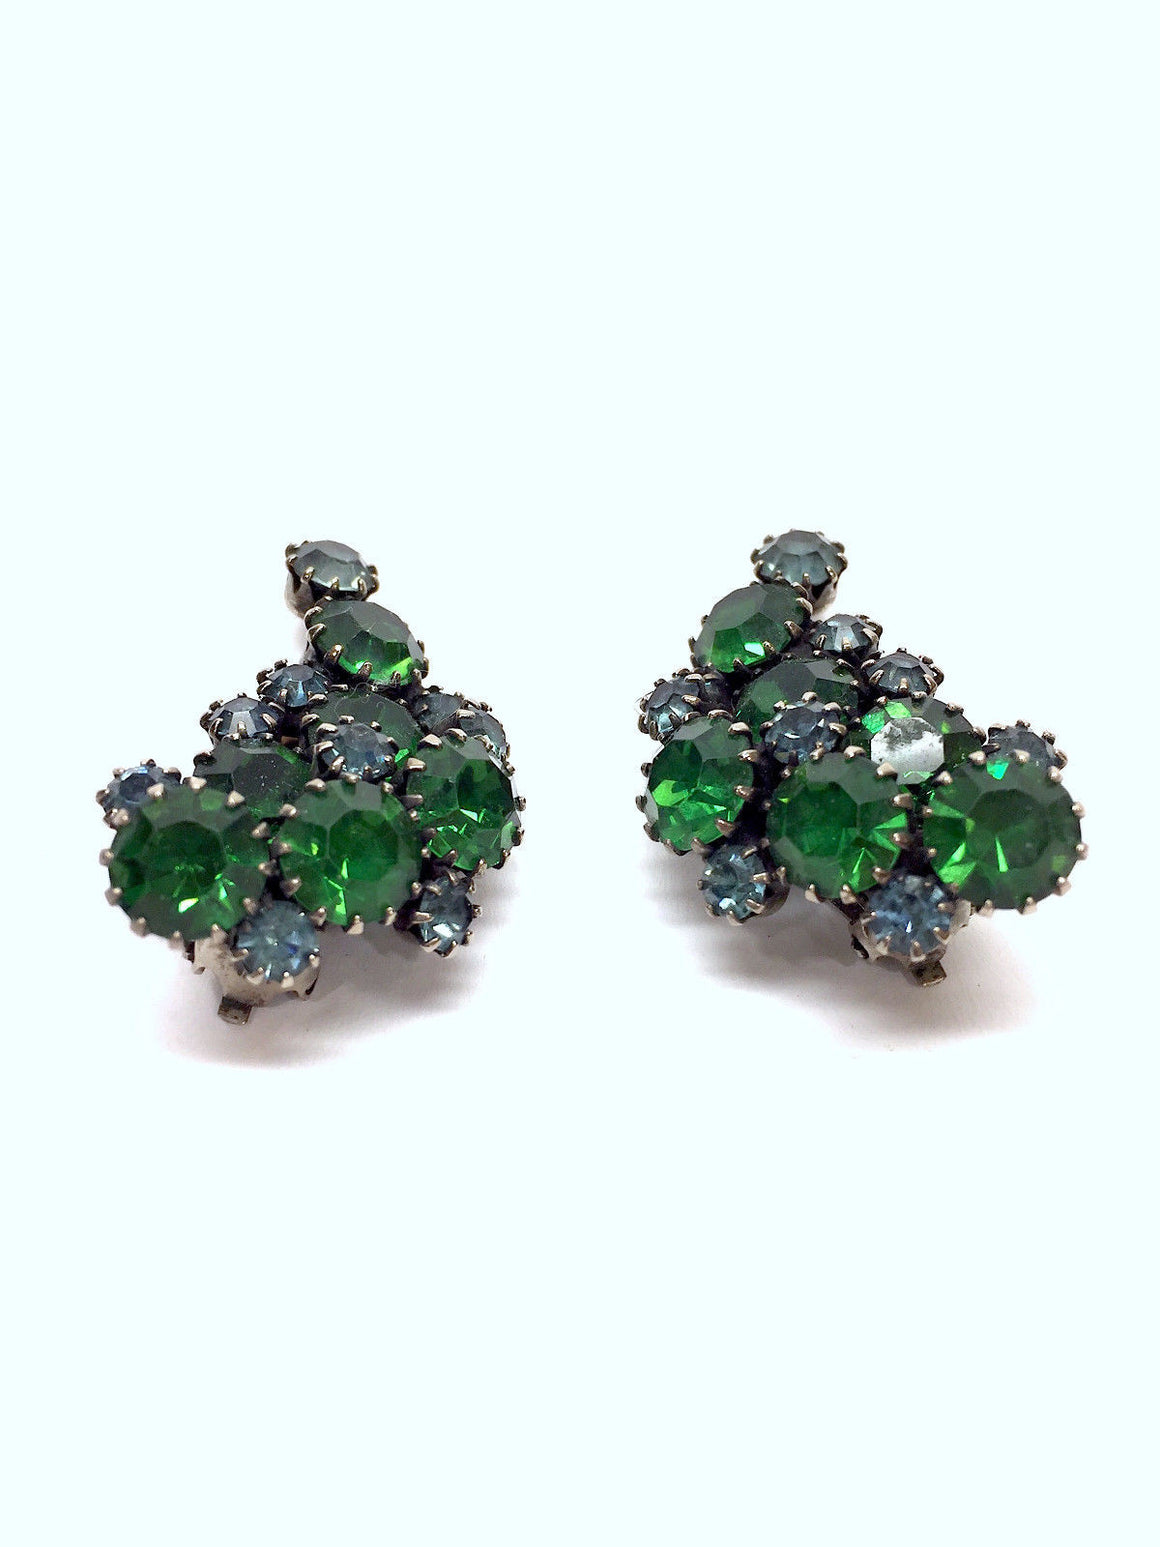 bisbiz.com KRAMER VINTAGE Emerald-Green Aqua-Blue Crystal Paisley Climber Clip Earrings - Bis Luxury Resale